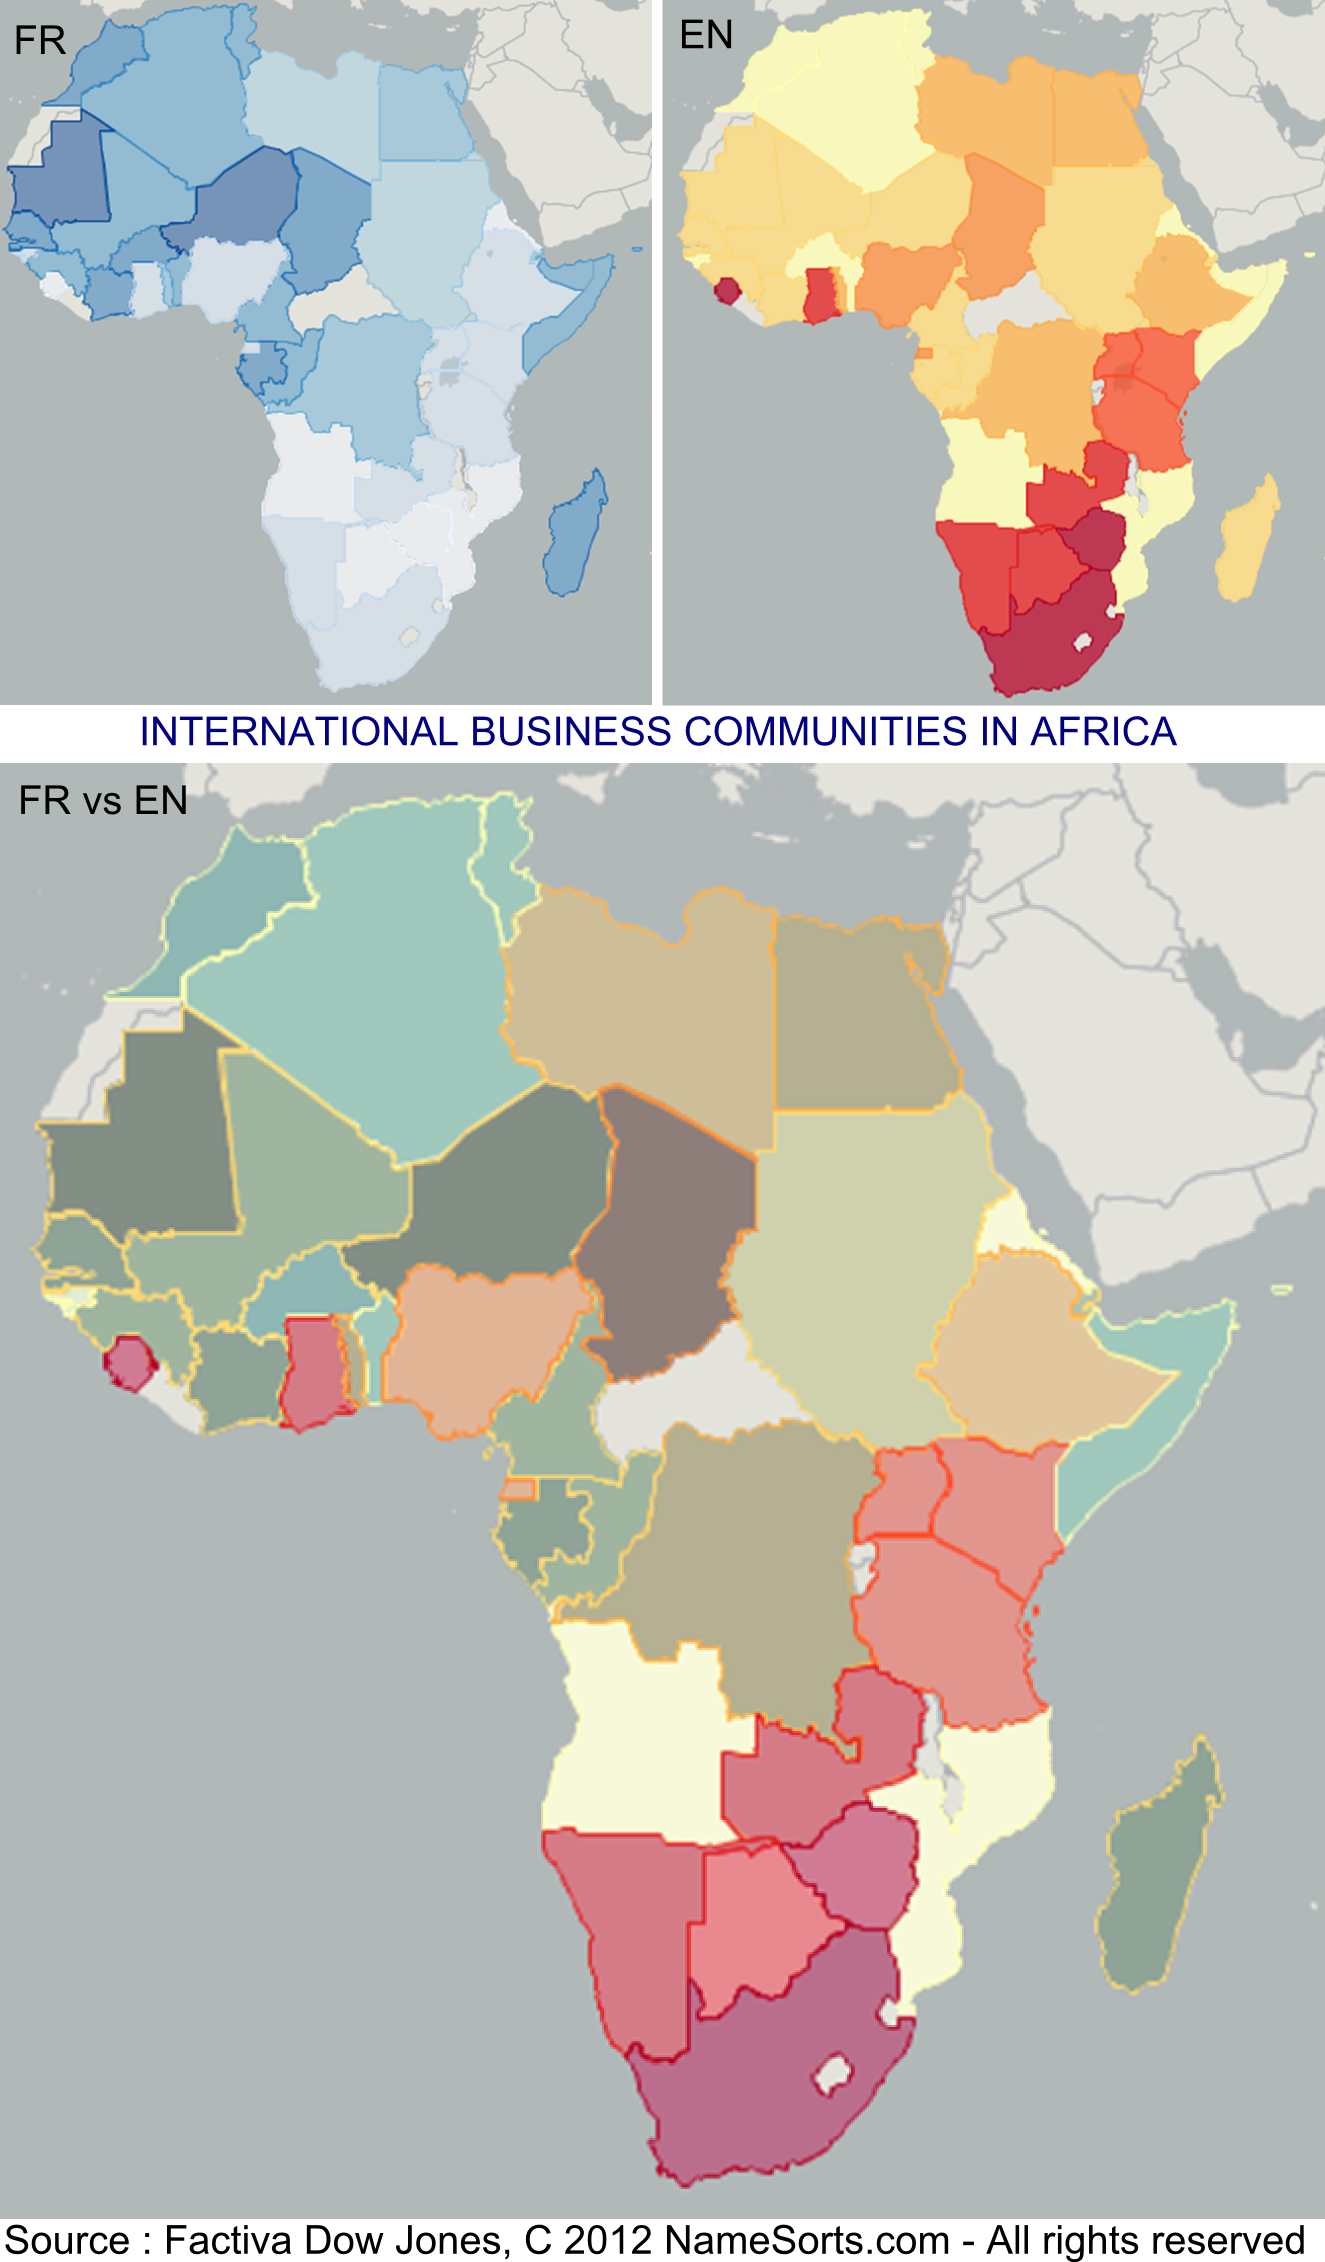 10 trends on foreign investment in Africa